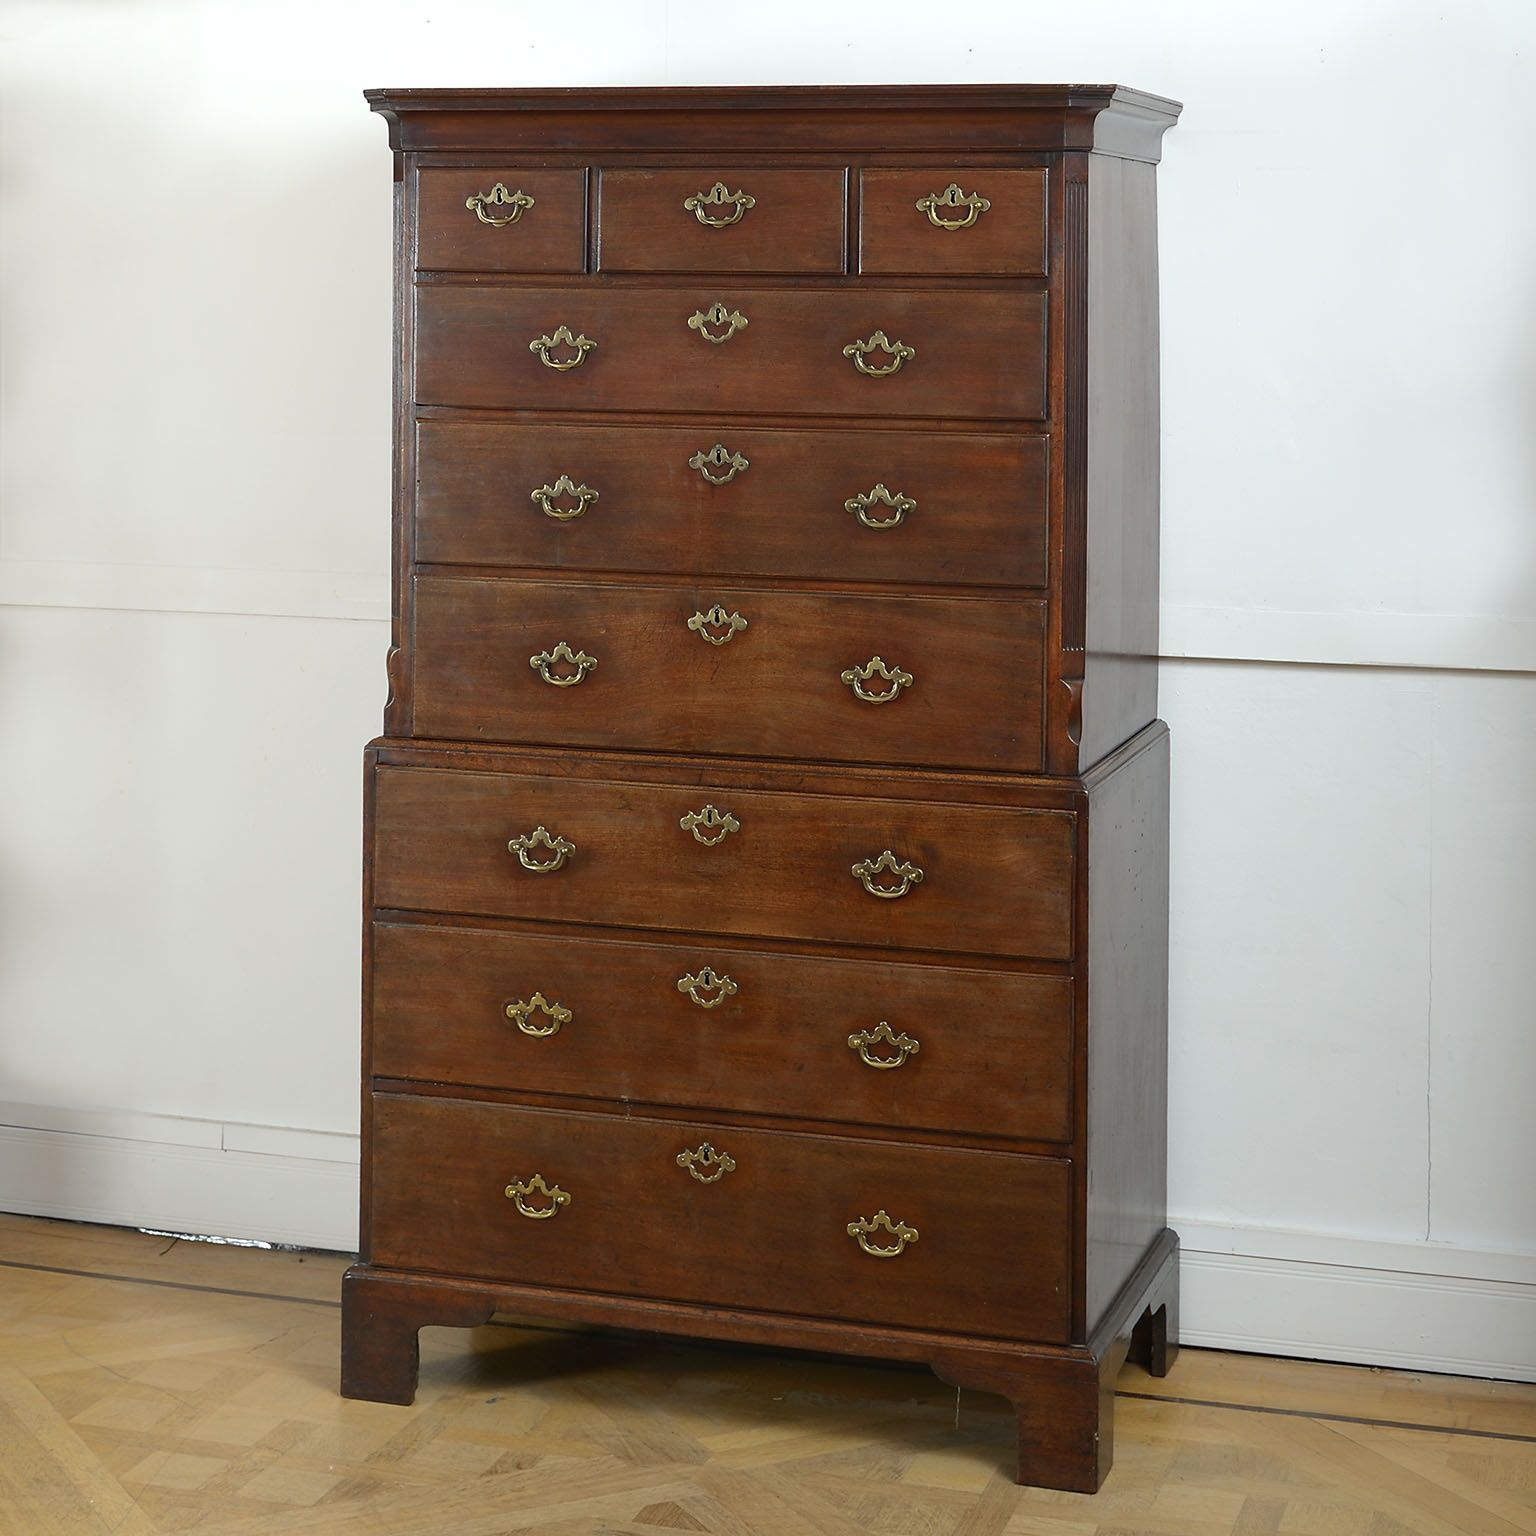 George II Mahogany Chest on Chest